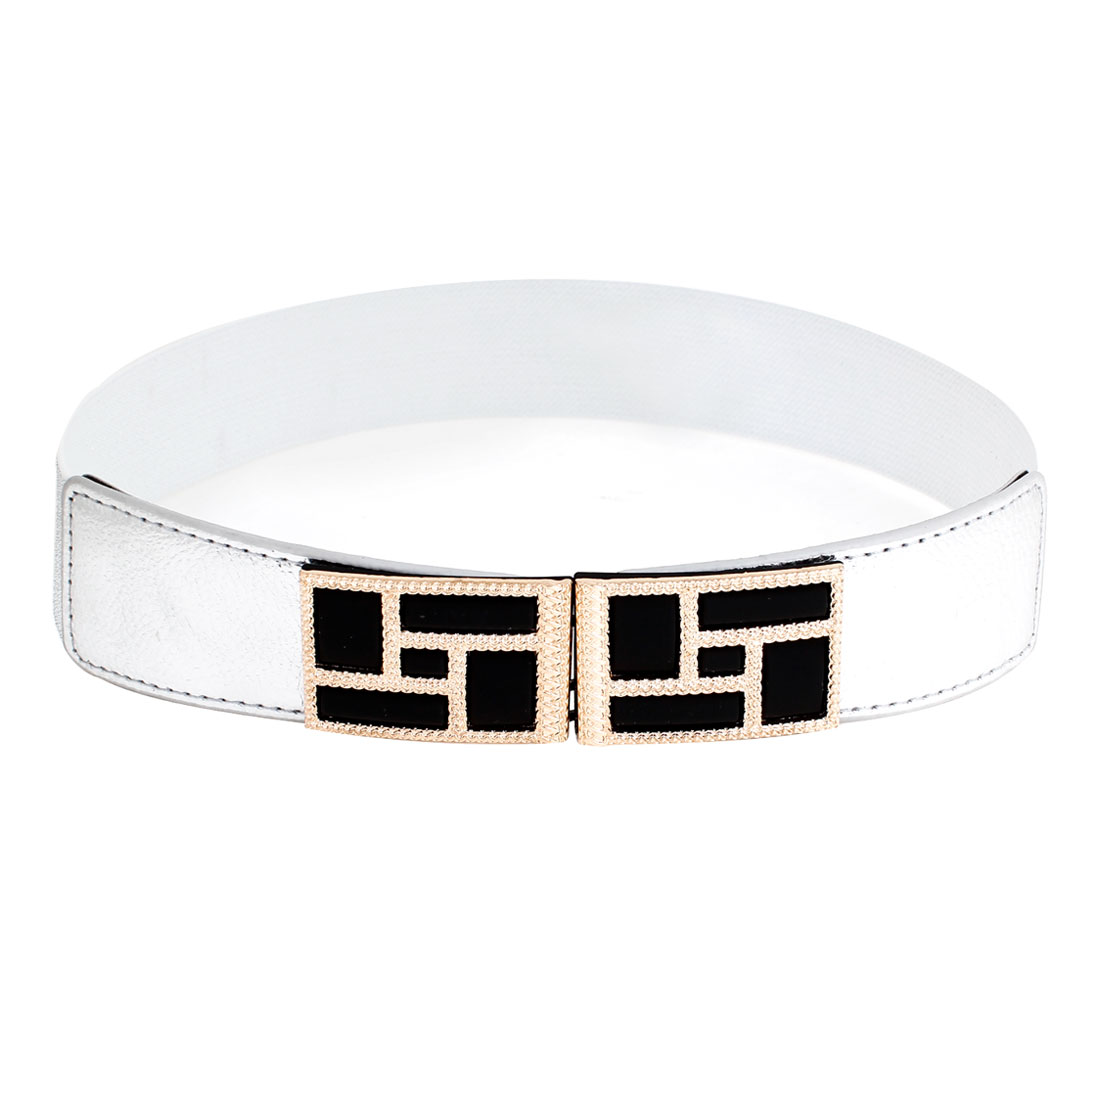 Lady Metal Interlocing Buckle 4cm Width Elastic Silver Tone Waistband Belt